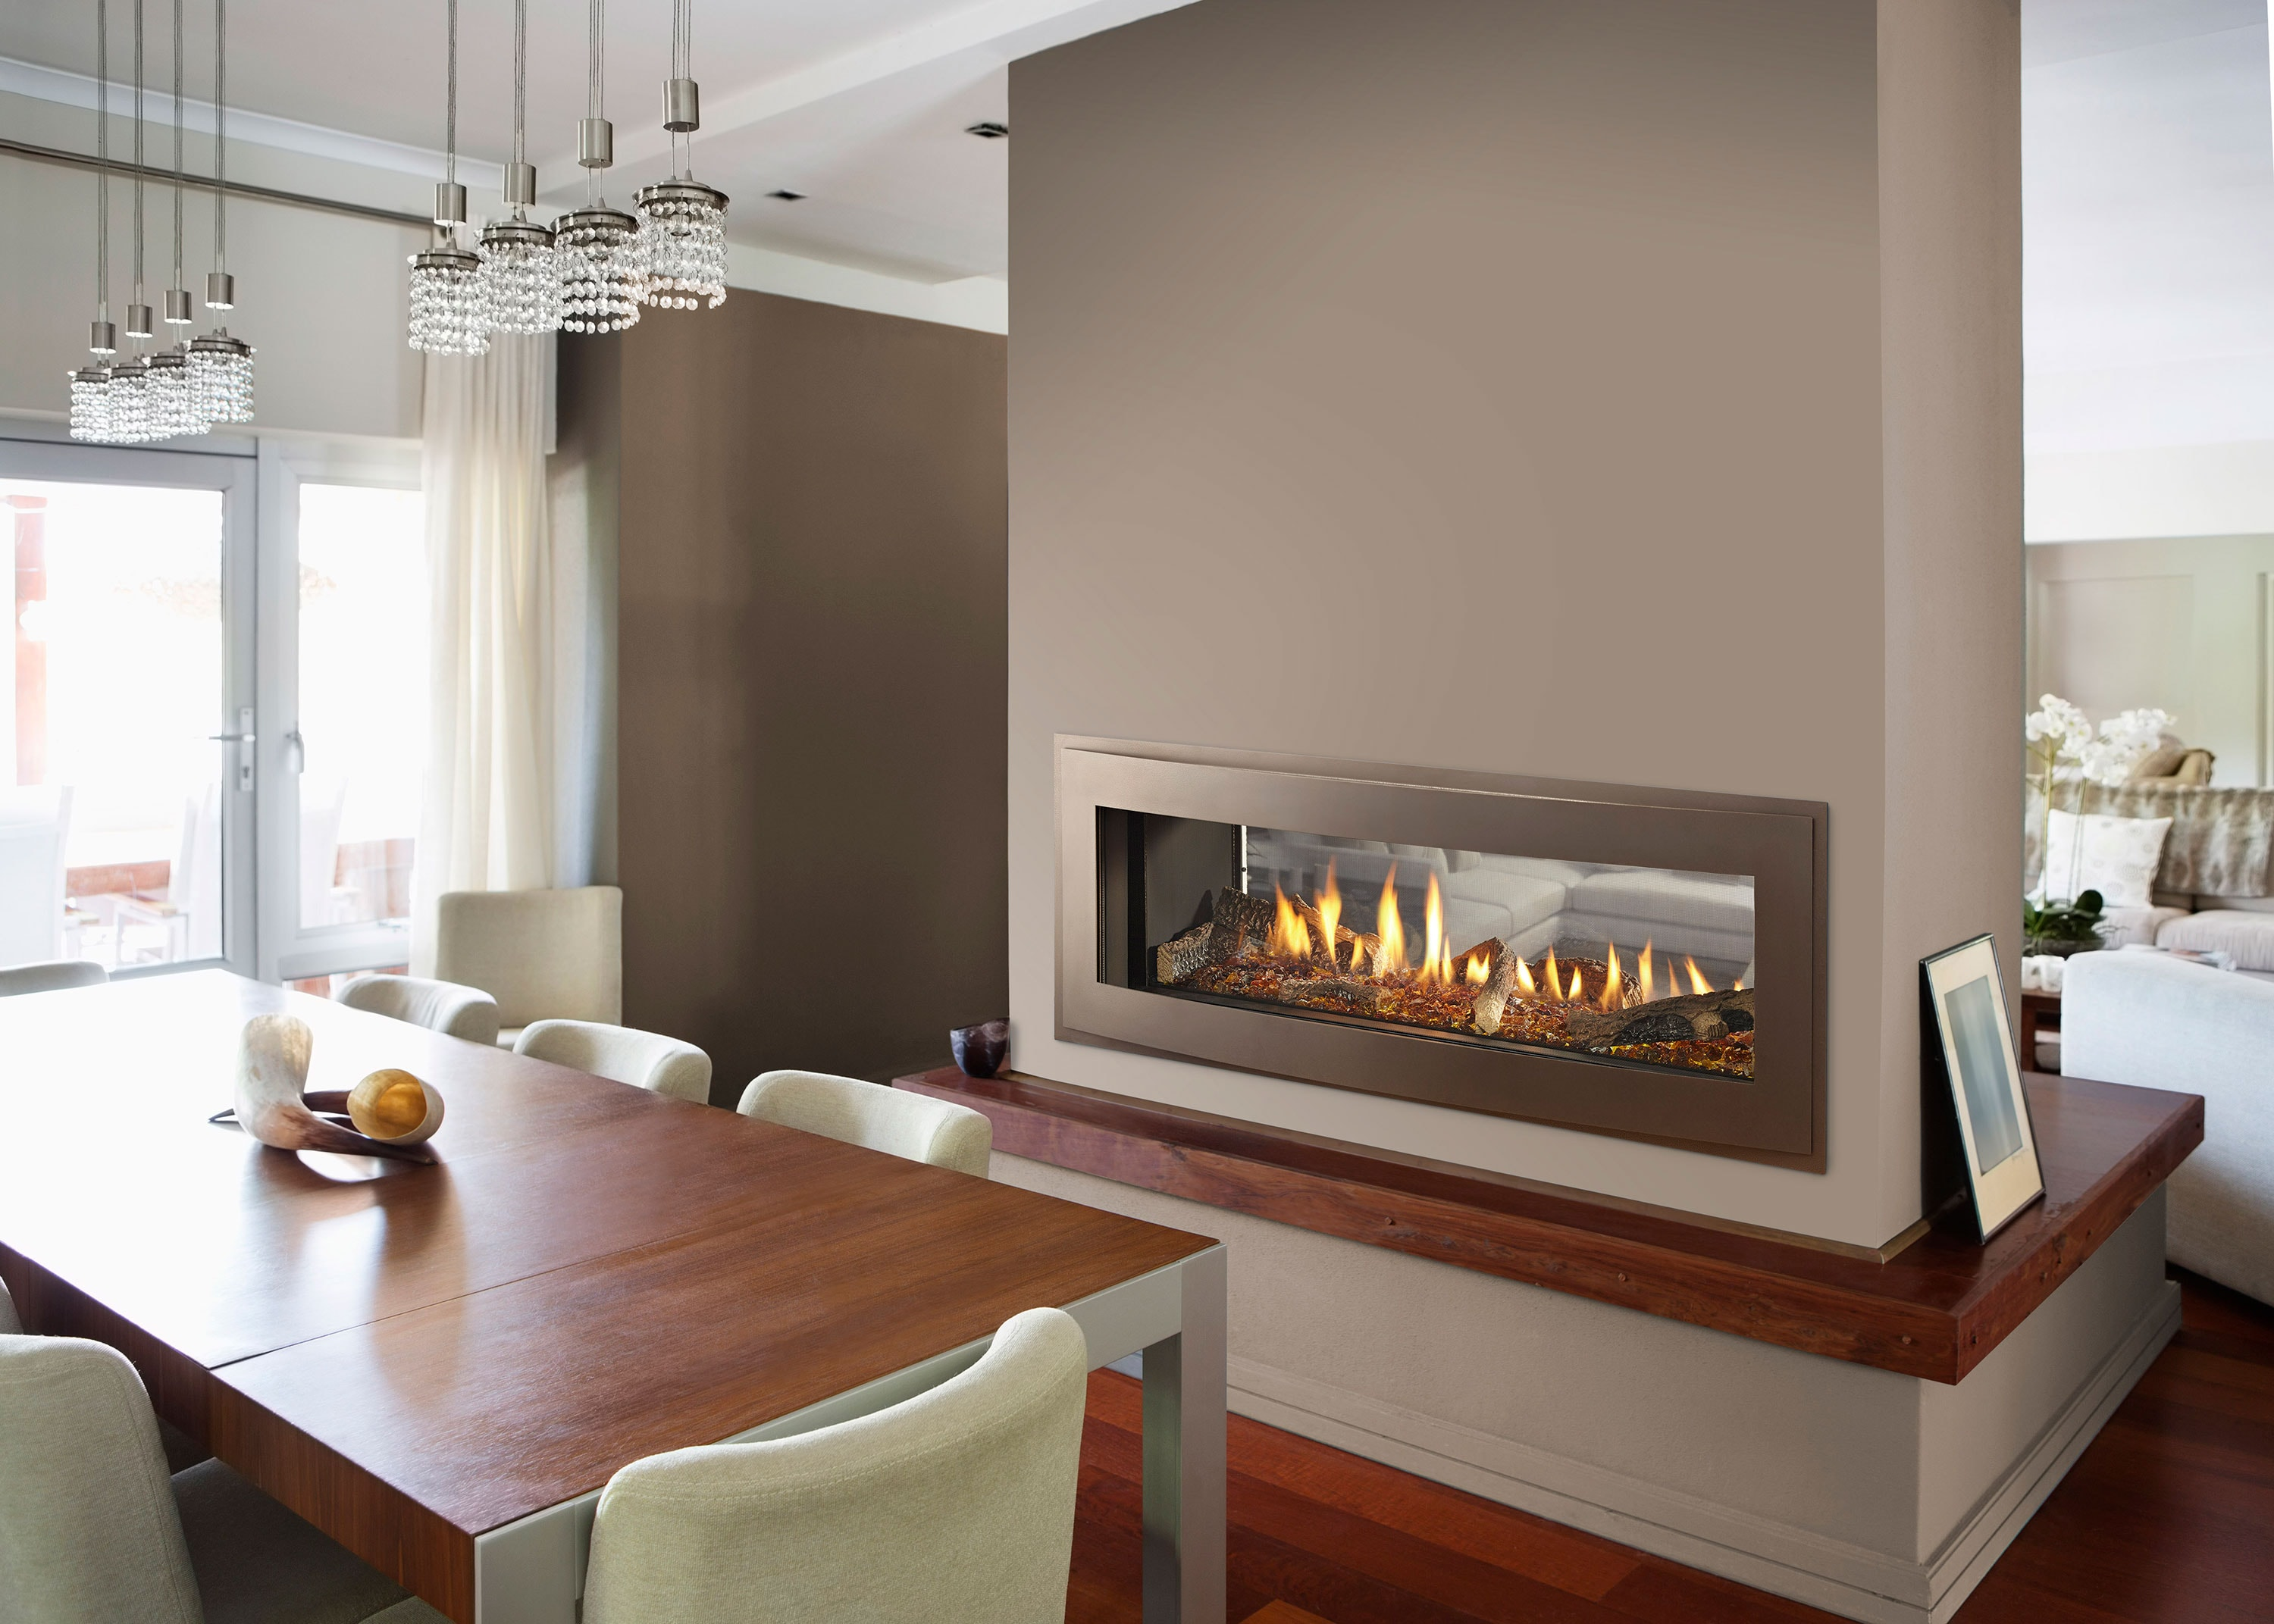 Unveiling new crave linear gas fireplace series heatilator for Through fireplace